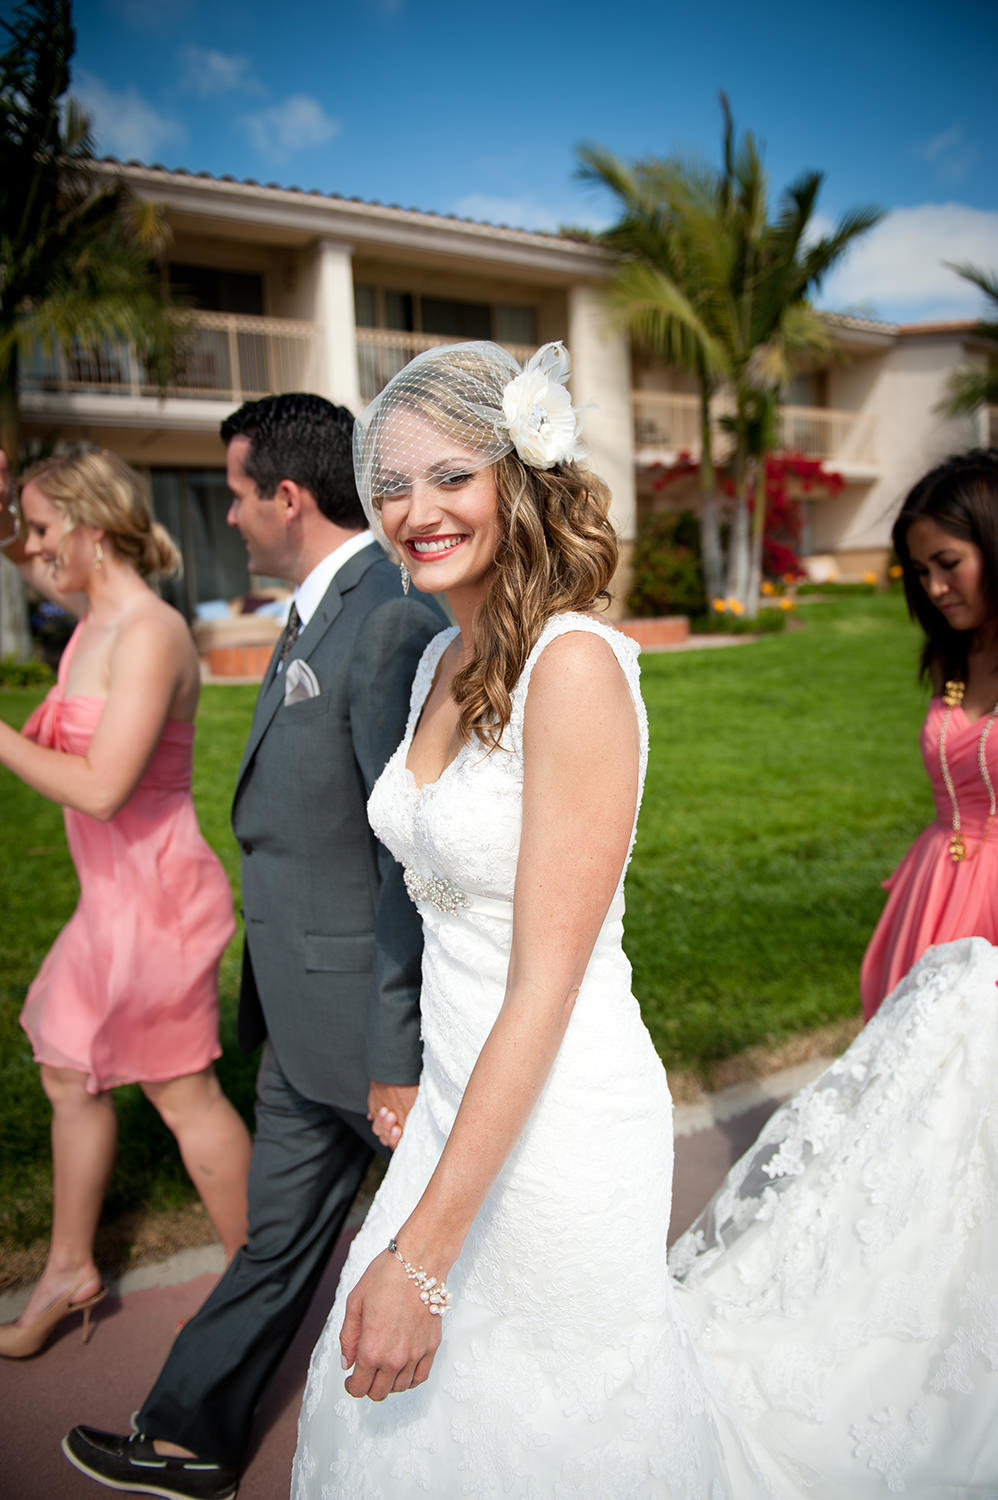 Bride walking with bridal party at hilton mission bay